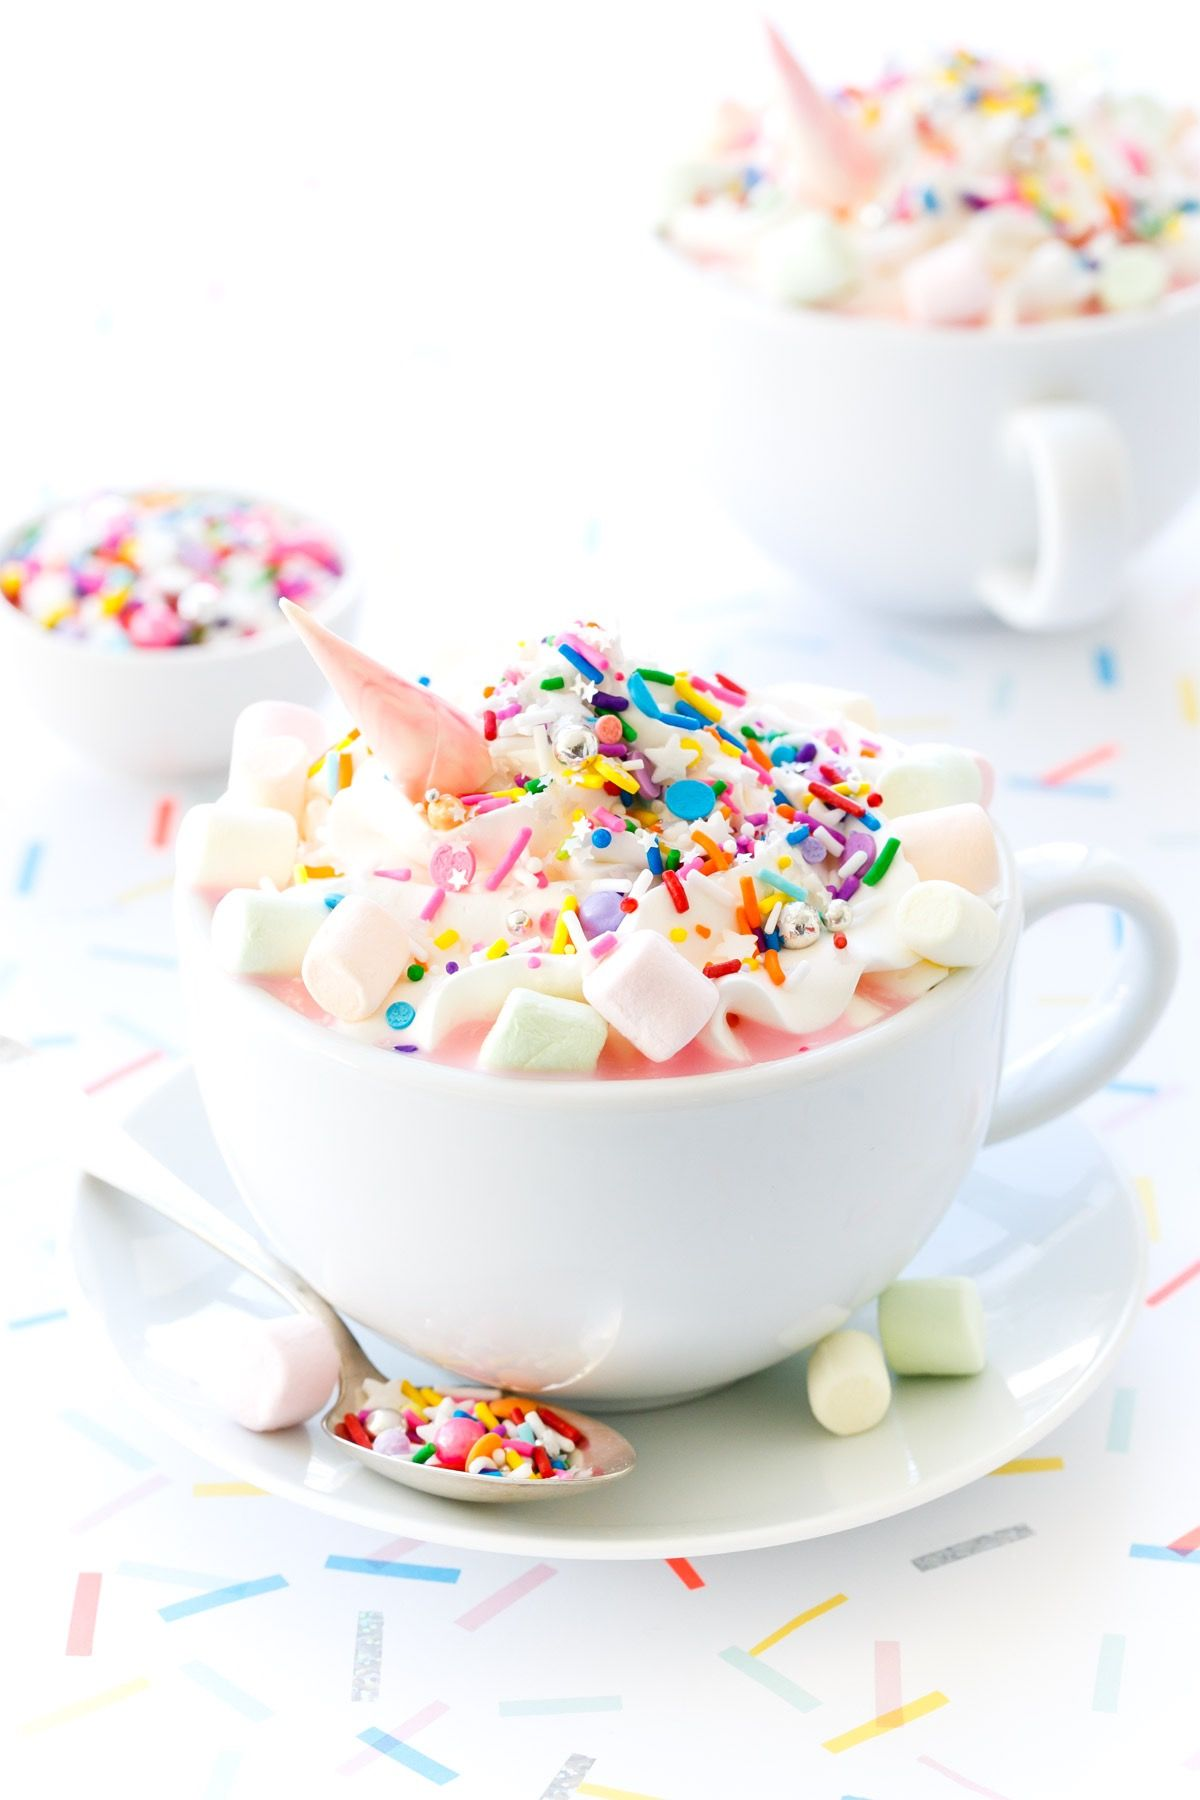 7 Gorgeously Glittery Unicorn Foods You Can Make at Home | Snacks ...